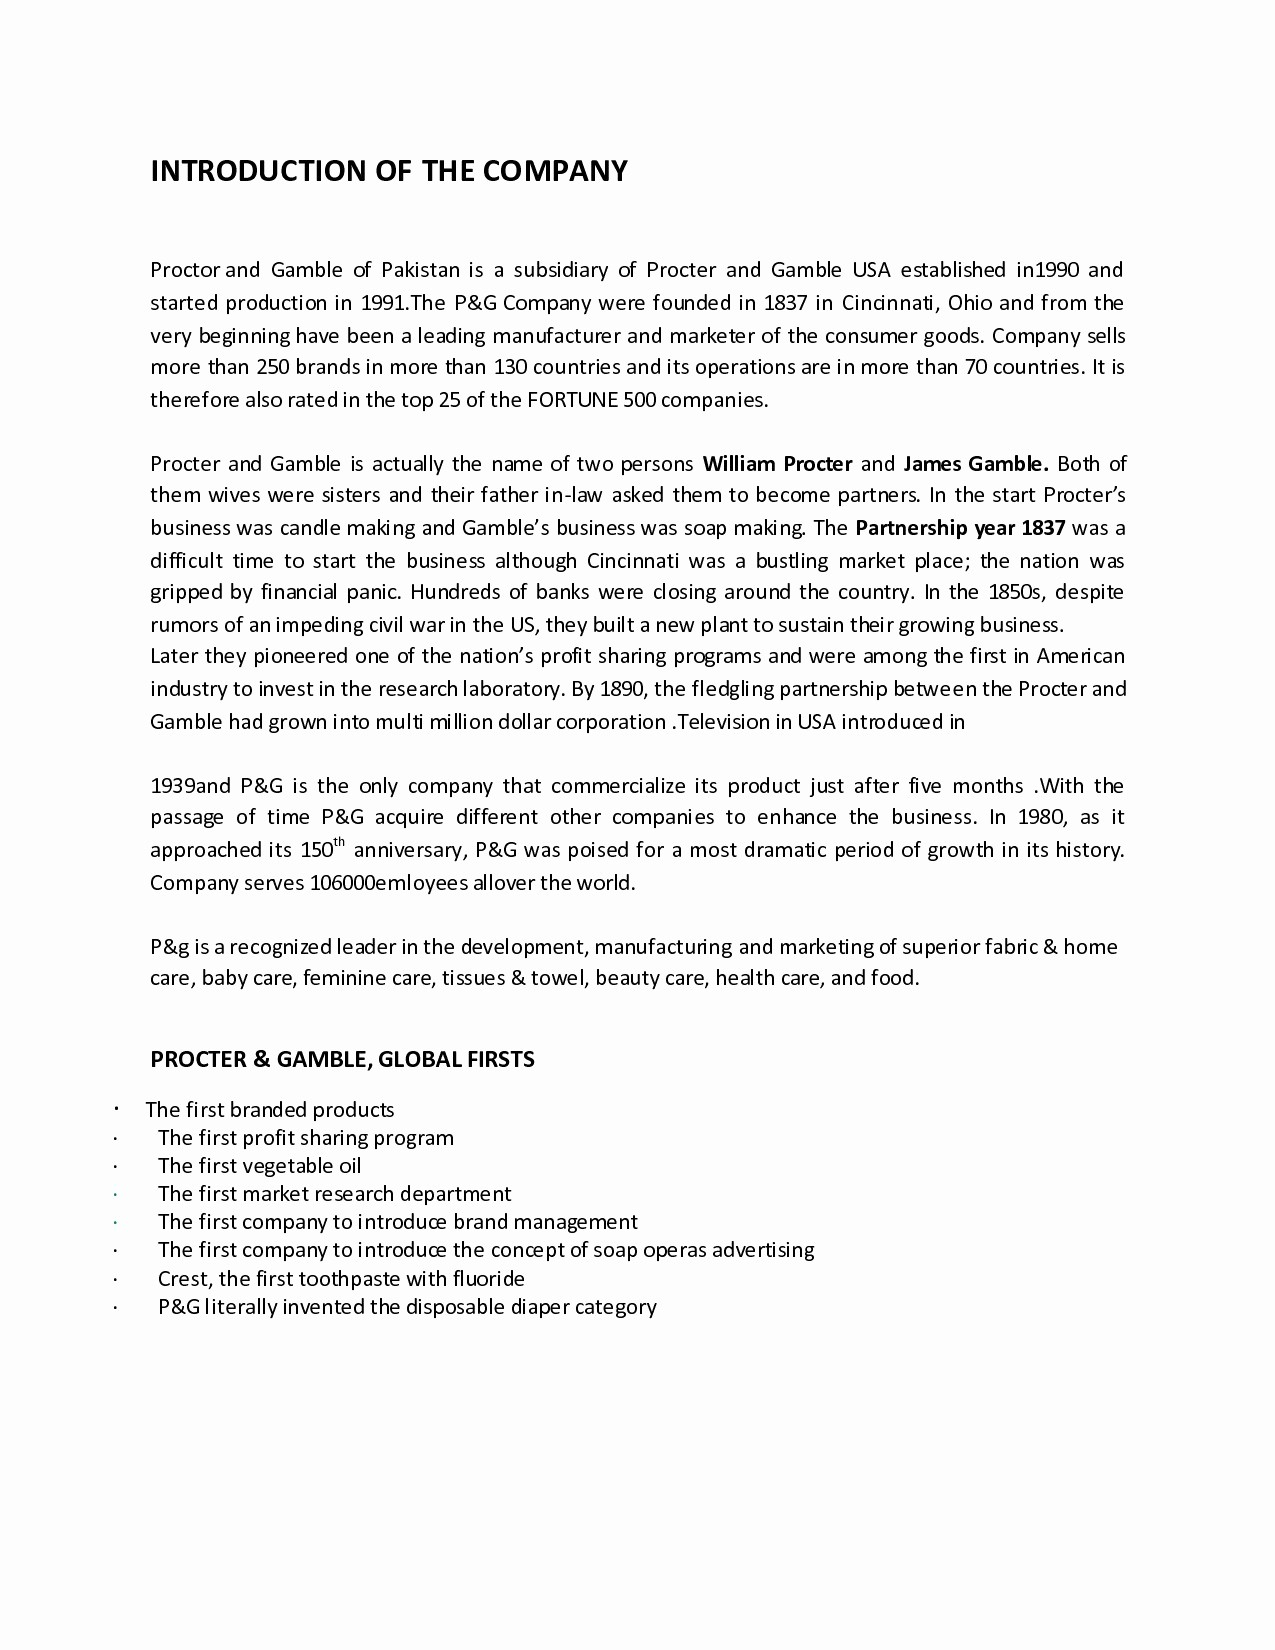 Email Cover Letter Template Free - Sample Email Cover Letter for Business Proposal